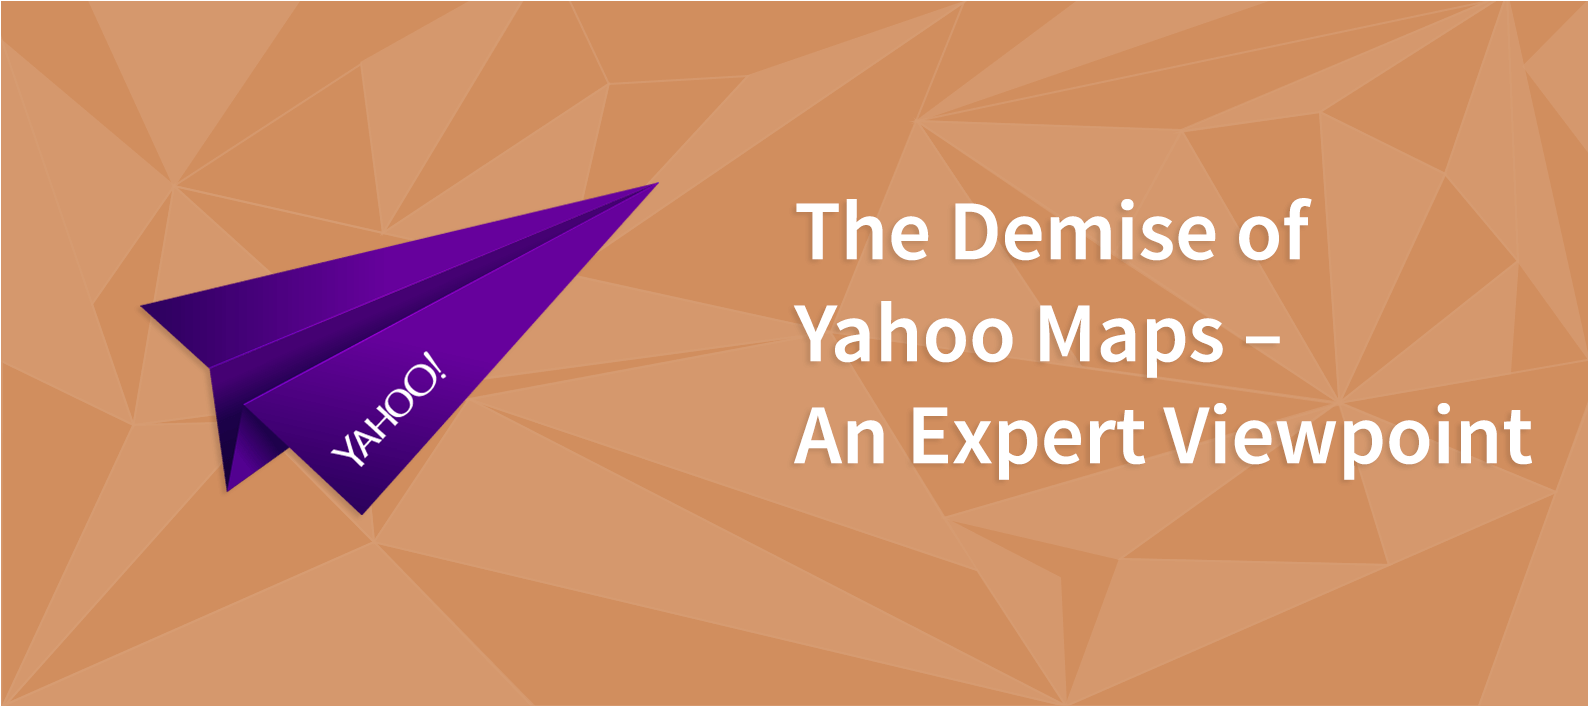 The Demise of Yahoo Maps - An Expert Viewpoint on yahoo! search, apple maps, yahoo! news, yahoo! video, yahoo meme, usa today maps, bloomberg maps, google maps, yahoo! directory, microsoft maps, yahoo! widget engine, windows maps, trade show maps, brazil maps, expedia maps, yahoo! mail, cia world factbook maps, web mapping, live maps, yahoo! briefcase, yahoo! sports, bing maps, mapquest maps, yahoo! groups, gulliver's travels maps, yahoo! pipes, rim maps, msn maps, goodle maps, zillow maps, nokia maps,